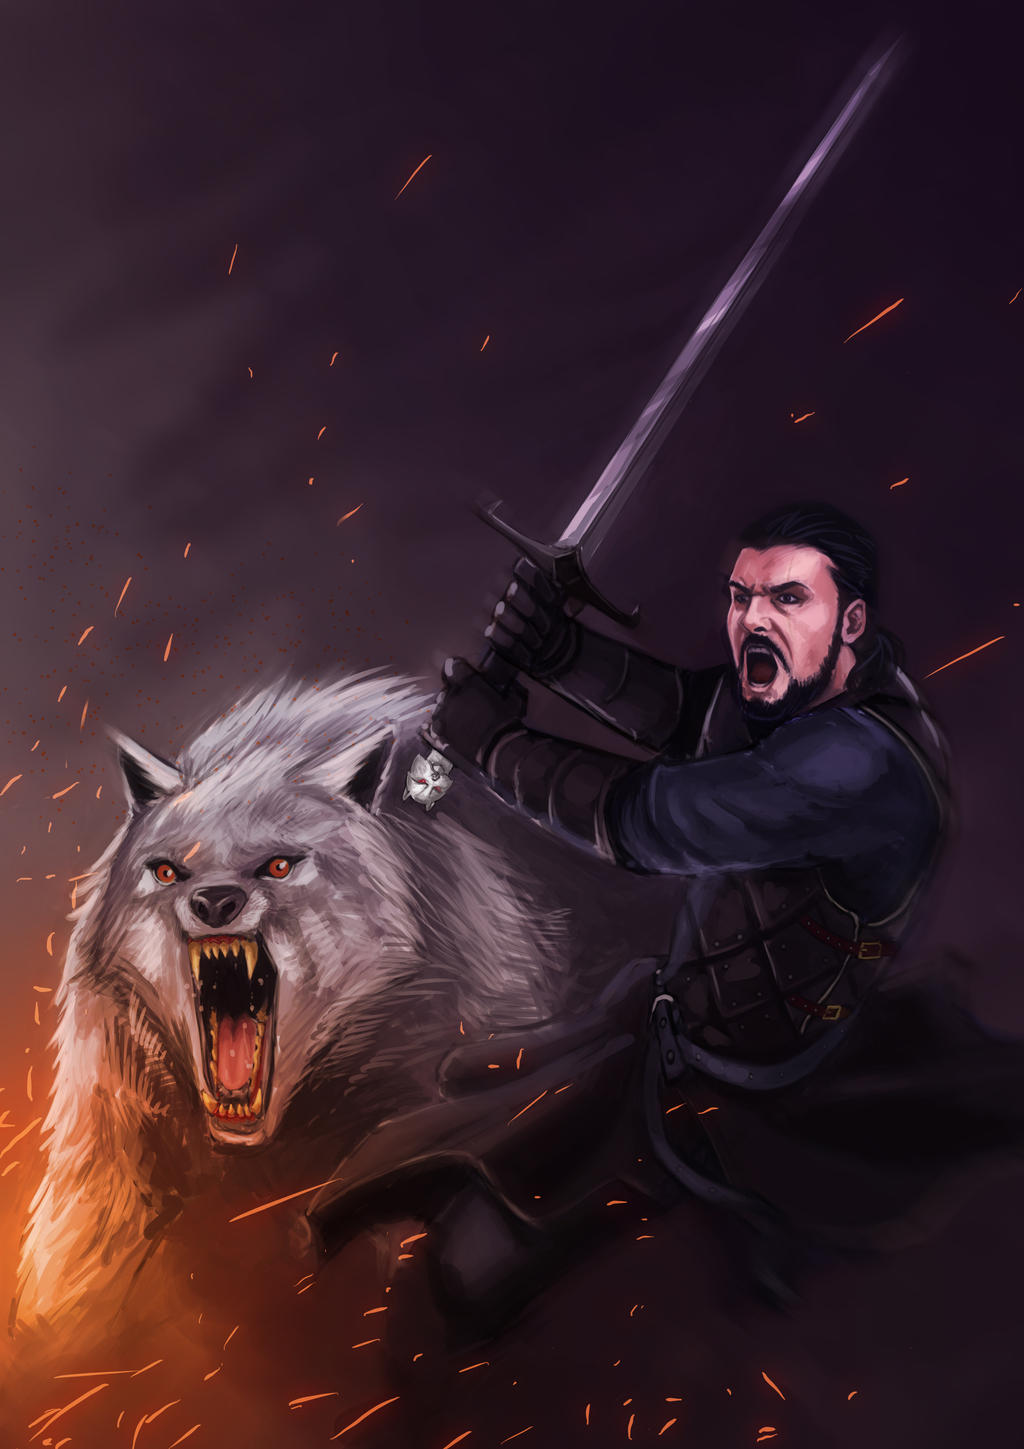 The King in the North!